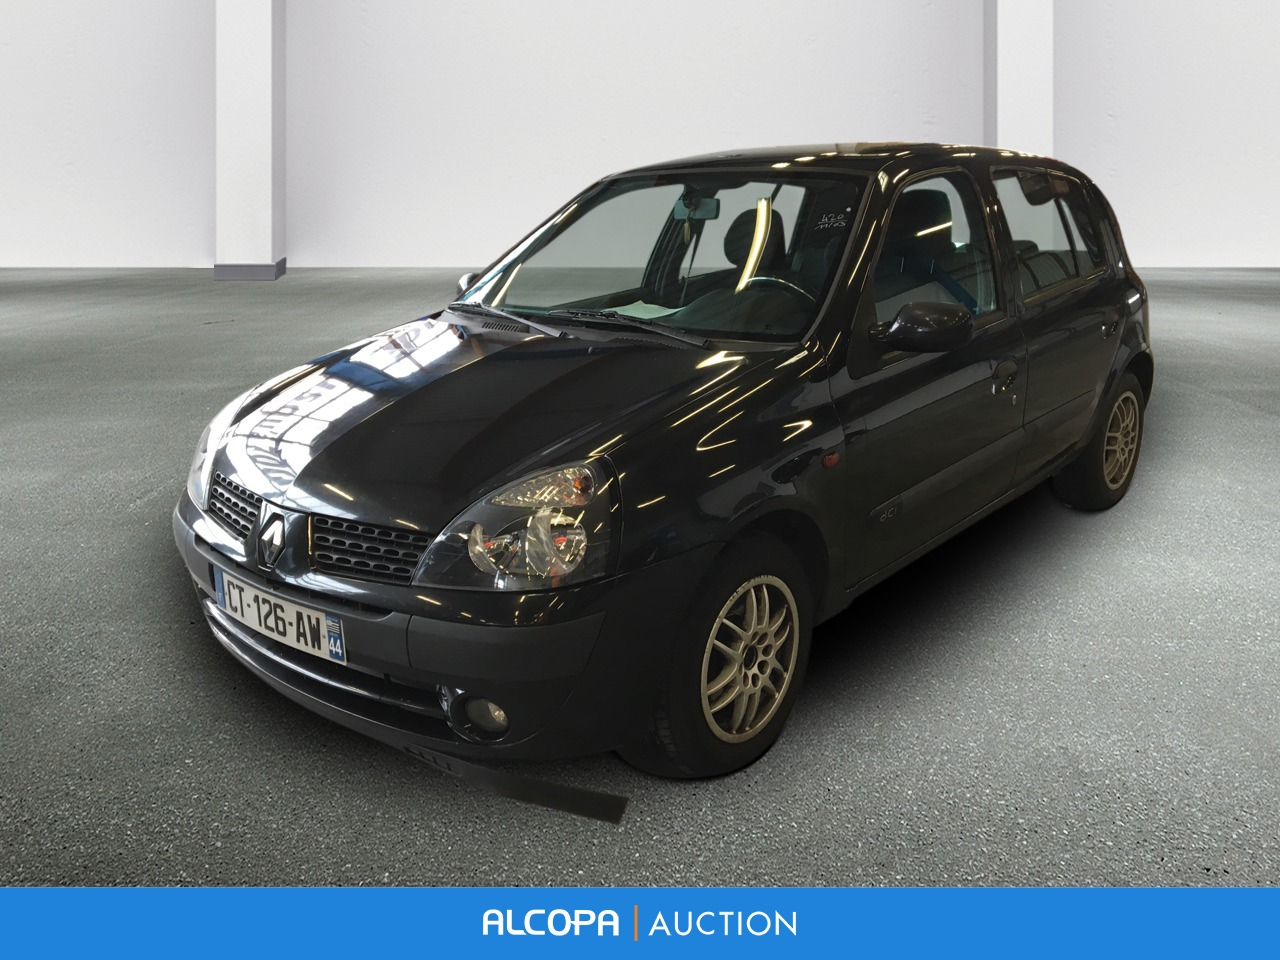 renault clio clio 1 5 dci 65 expression rennes alcopa auction. Black Bedroom Furniture Sets. Home Design Ideas